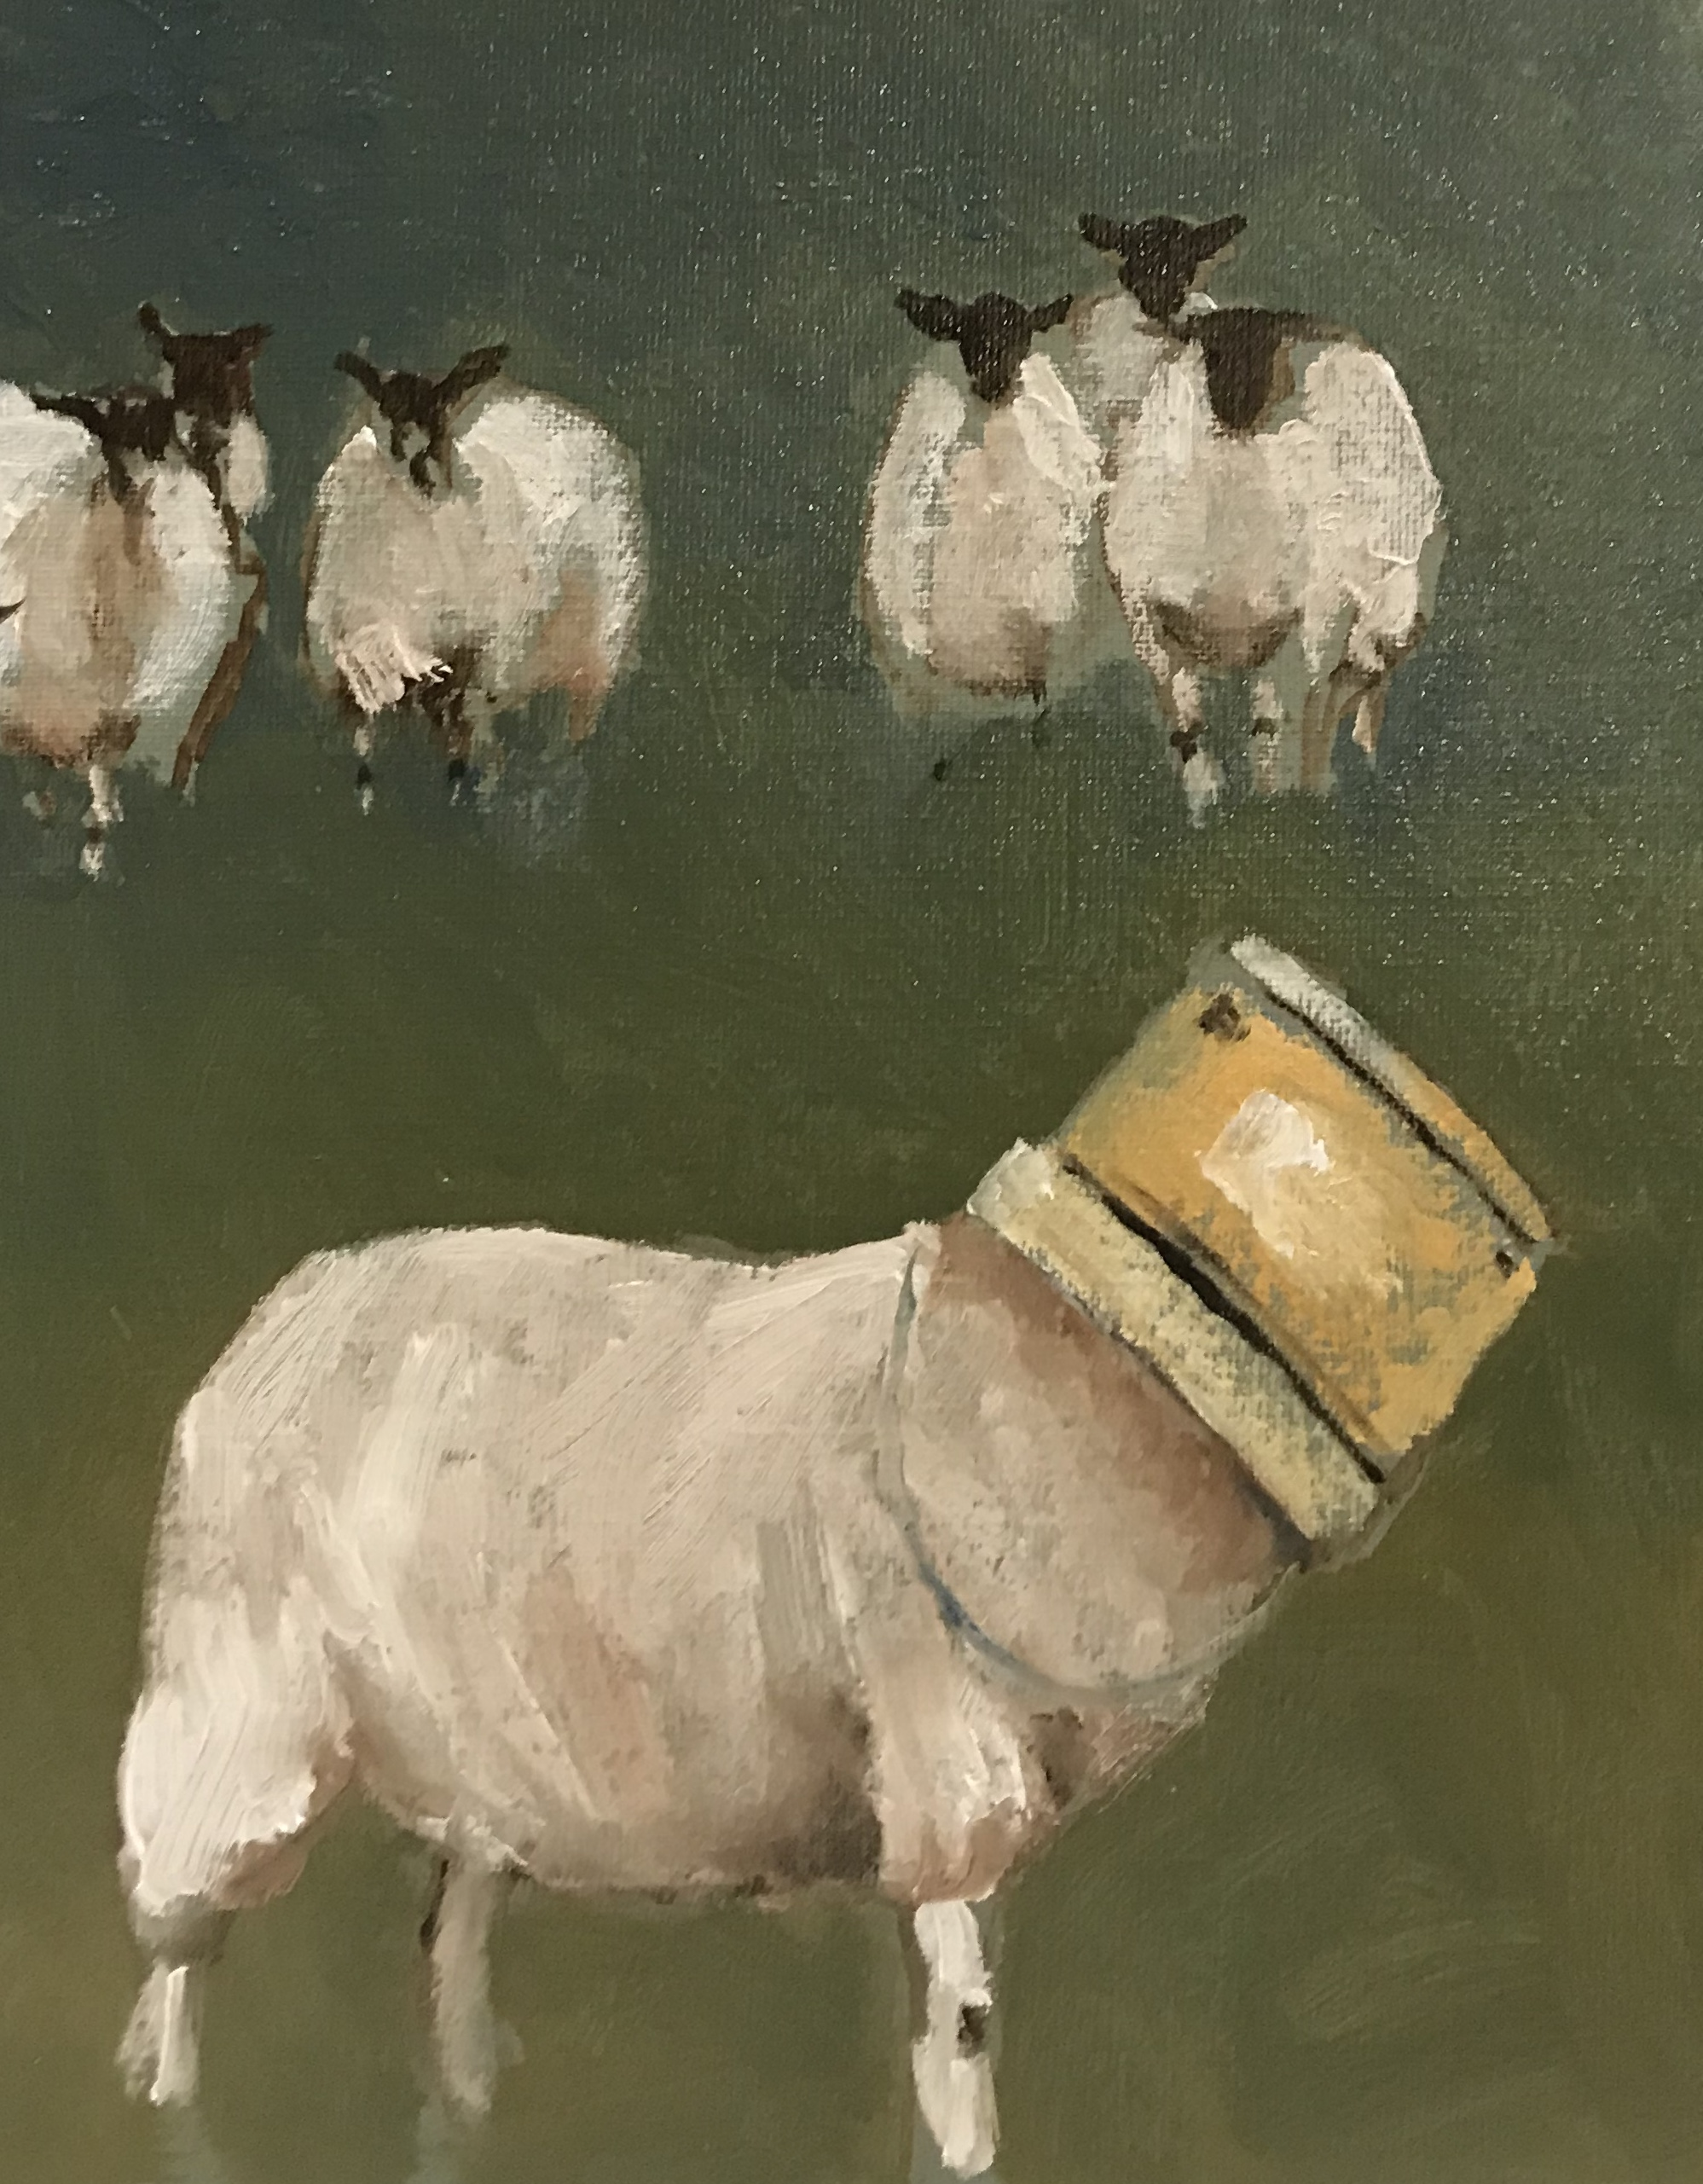 A sheep has a feed bucket over her head. The rest of the flock looks on.